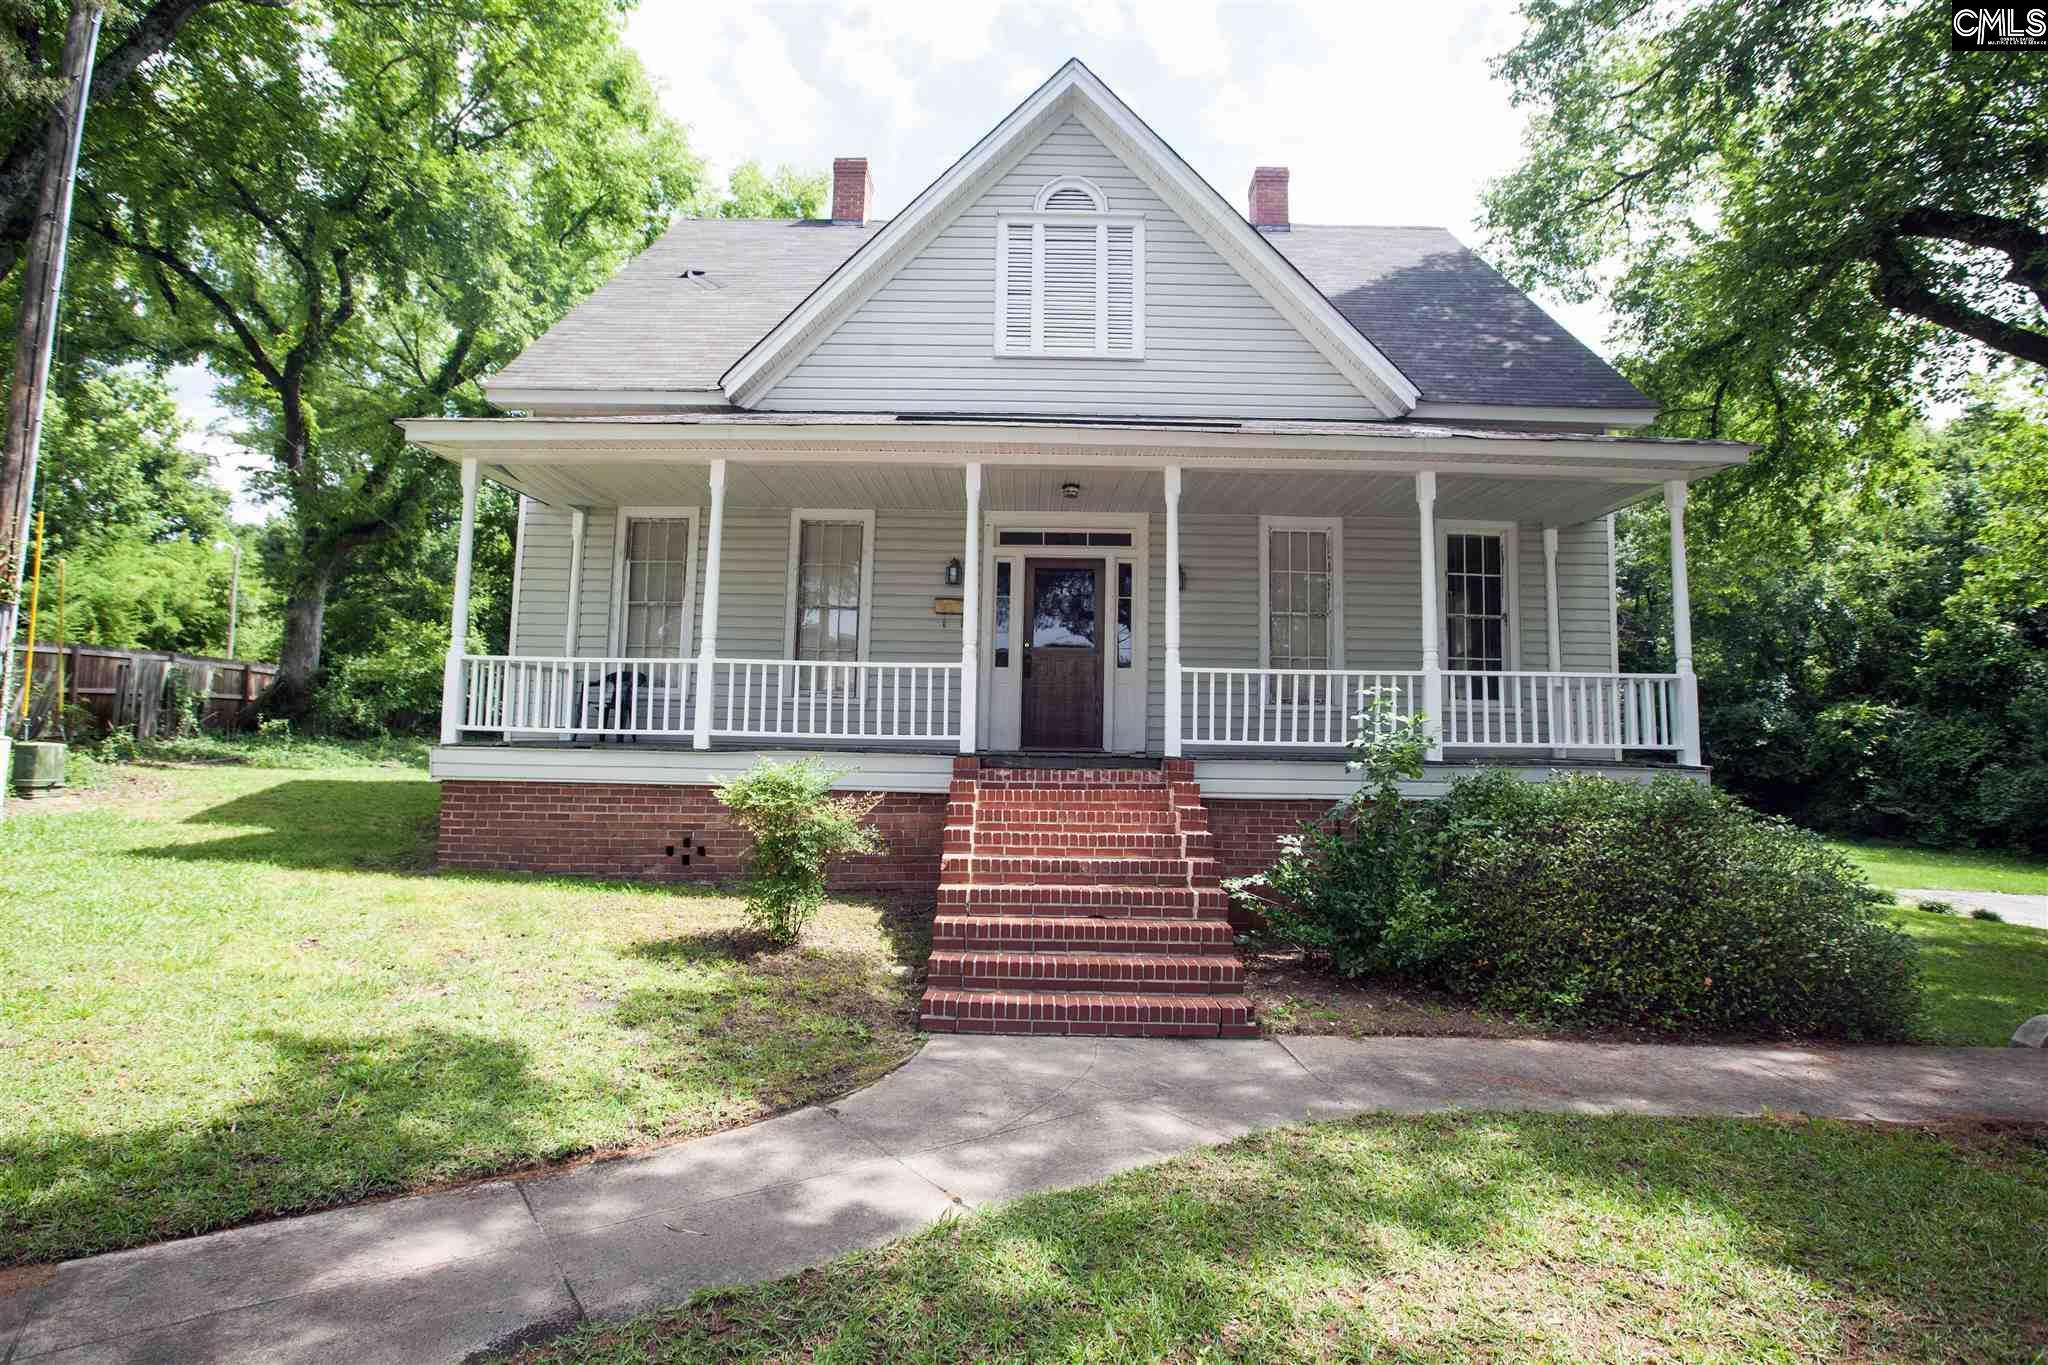 714 E Main Lexington, SC 29072